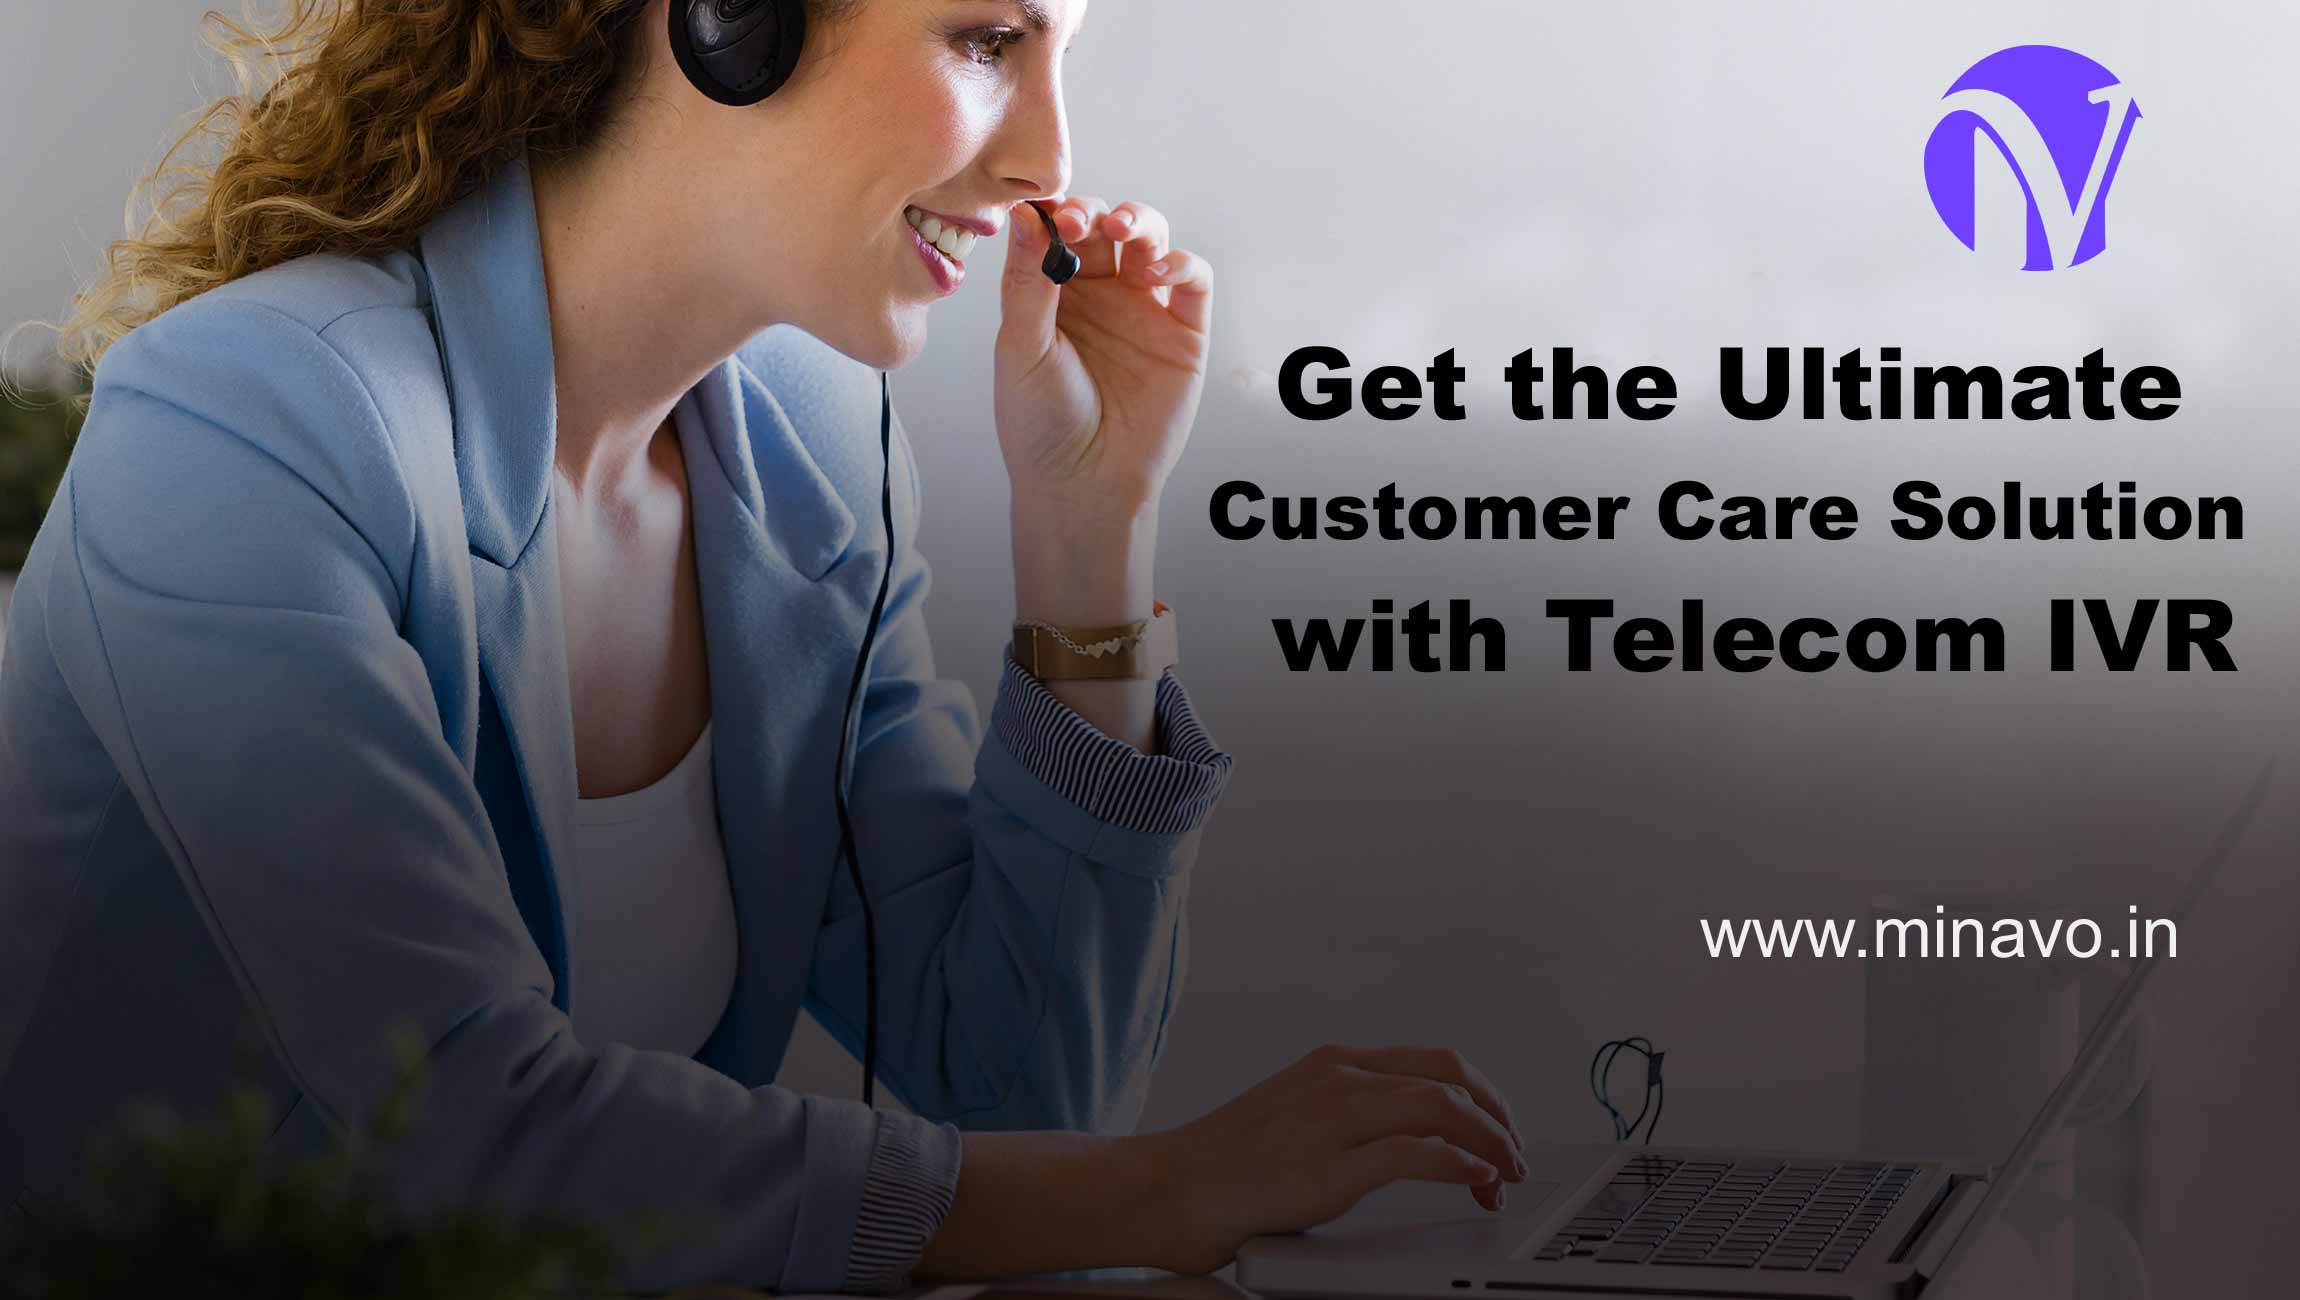 Get ready for new heights in your business with IVR Services.